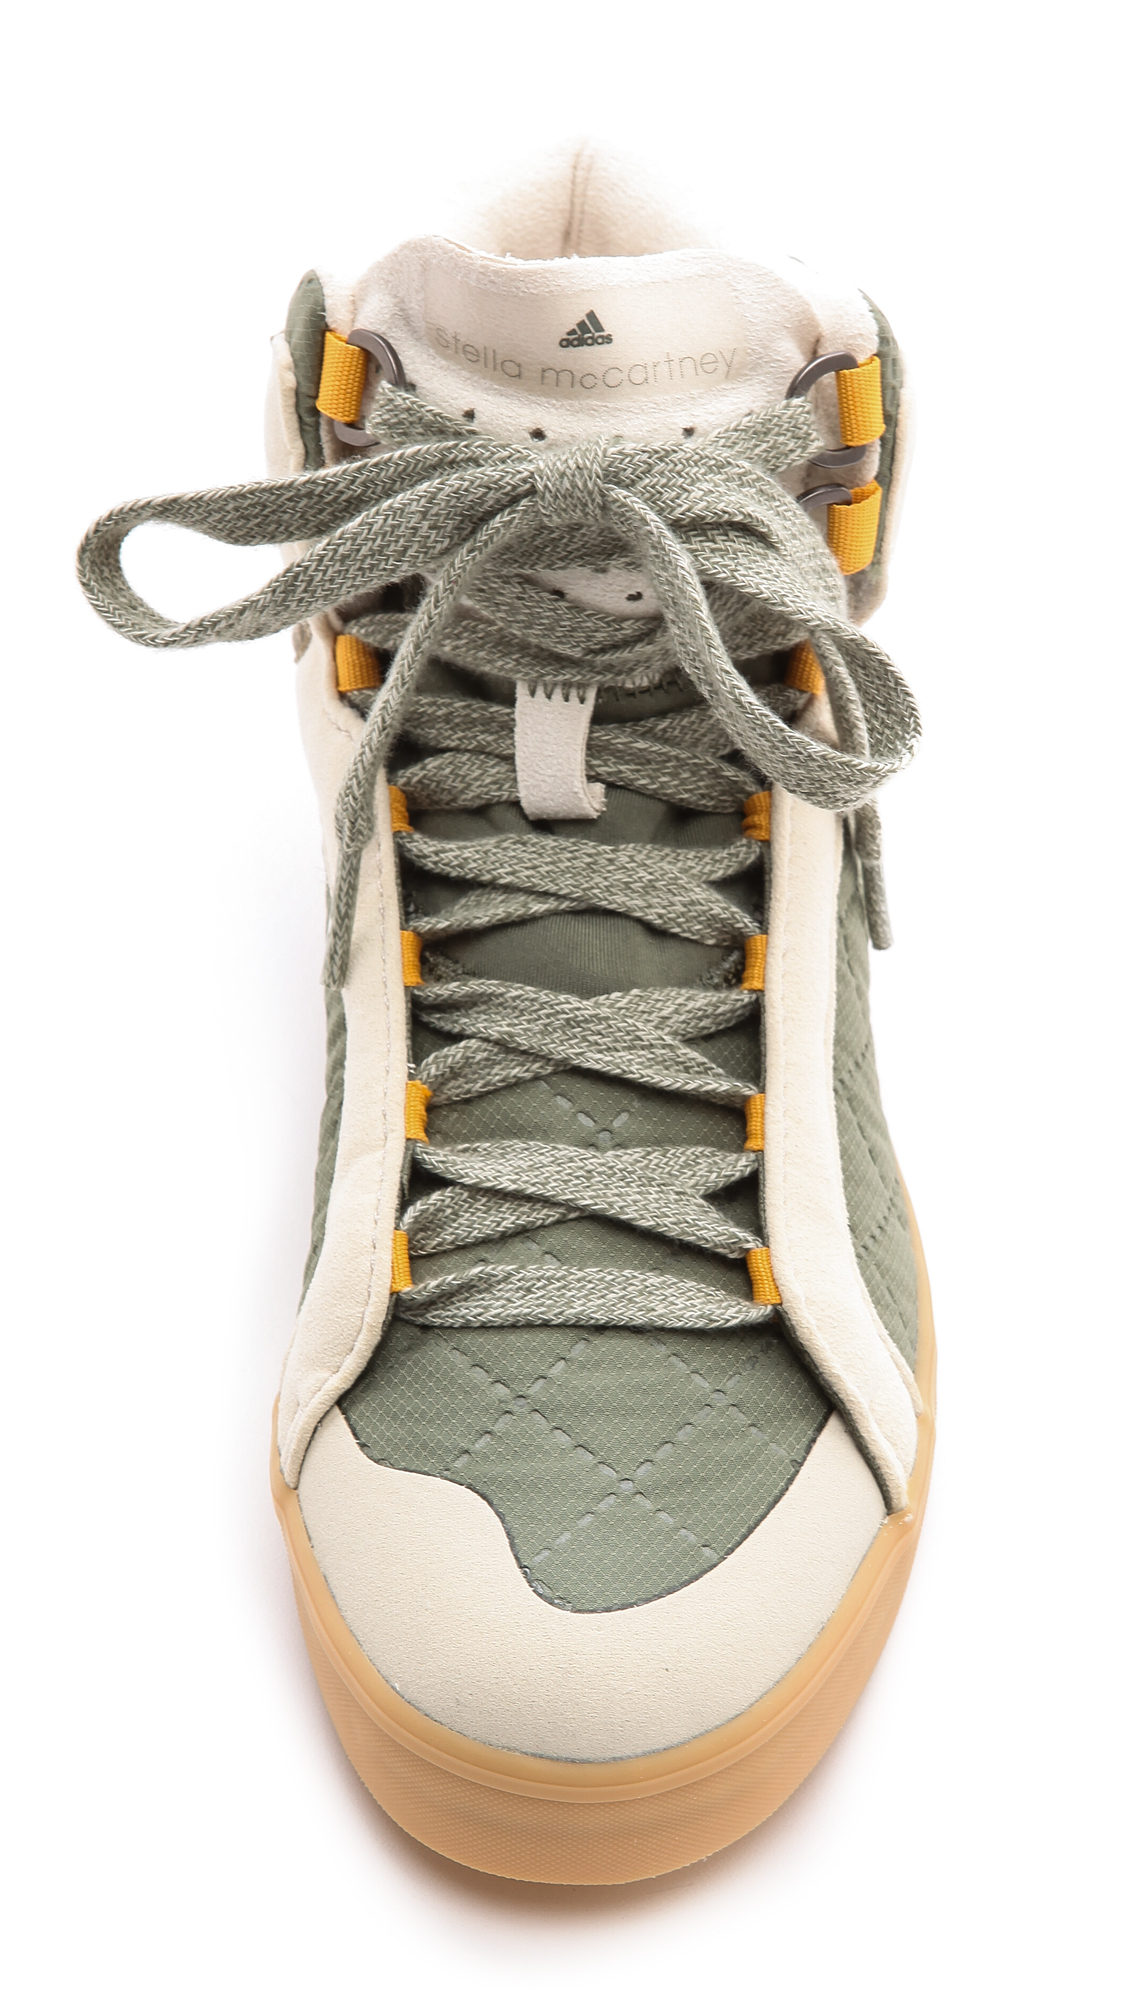 2ca906cc5f7 Lyst - adidas By Stella McCartney Discosura Hiker Sneakers Loamantique  Whiteraven in Green